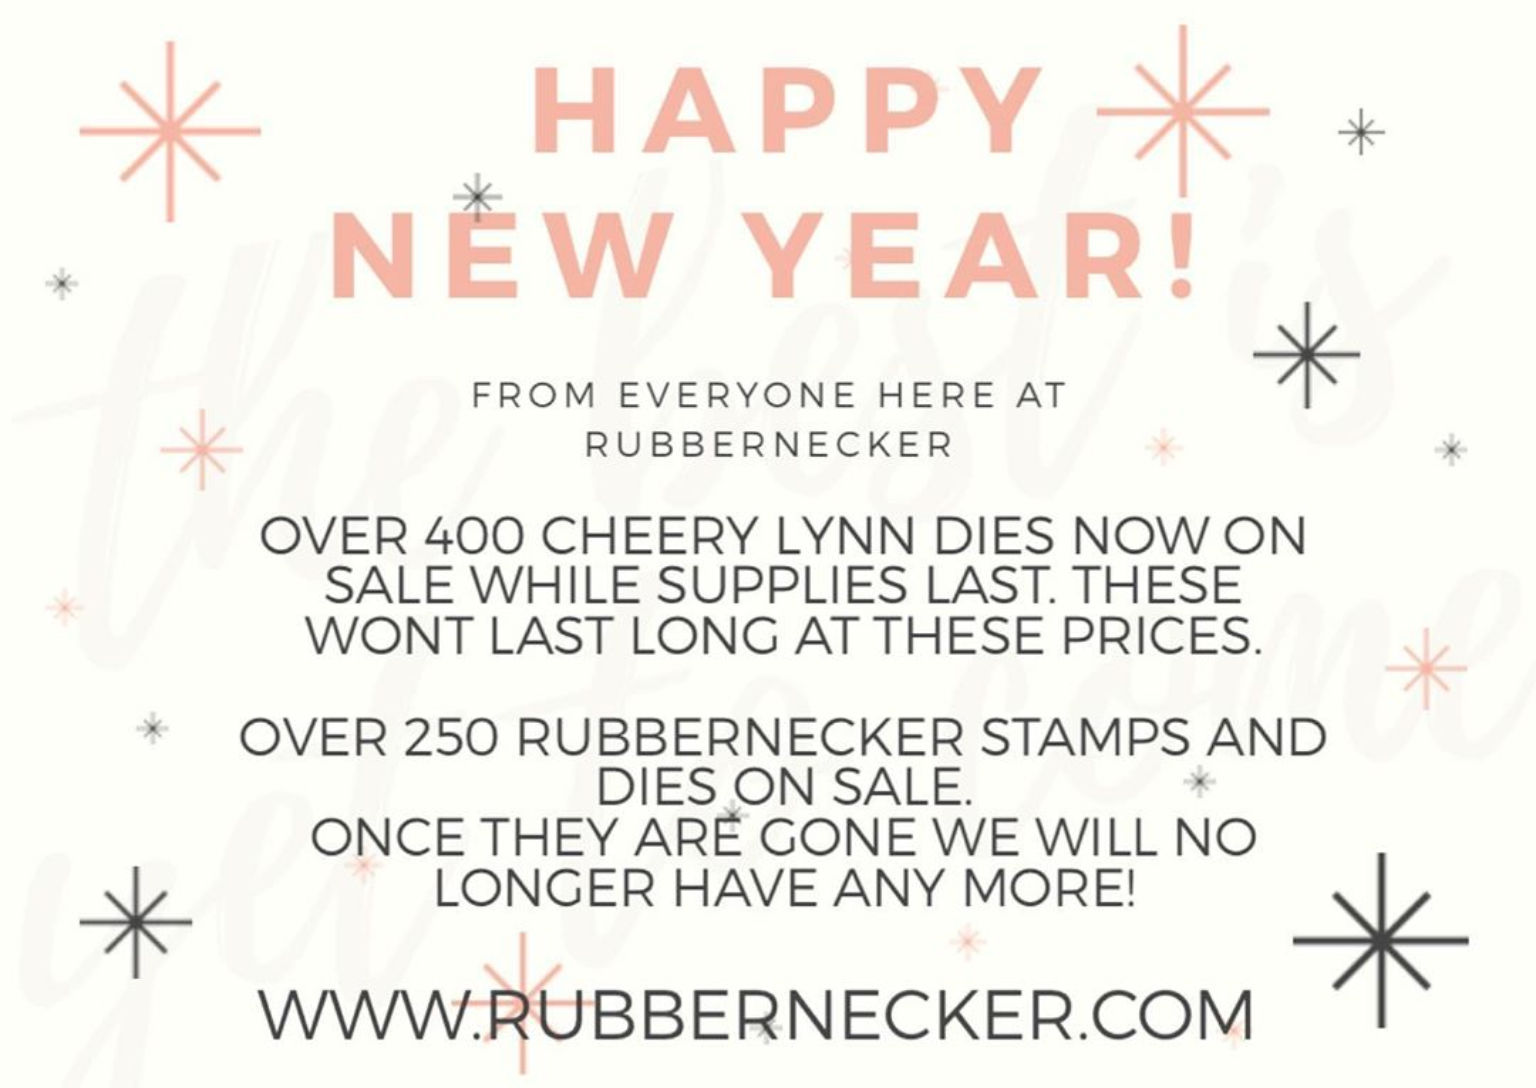 Rubbernecker Cheery Lynn sale